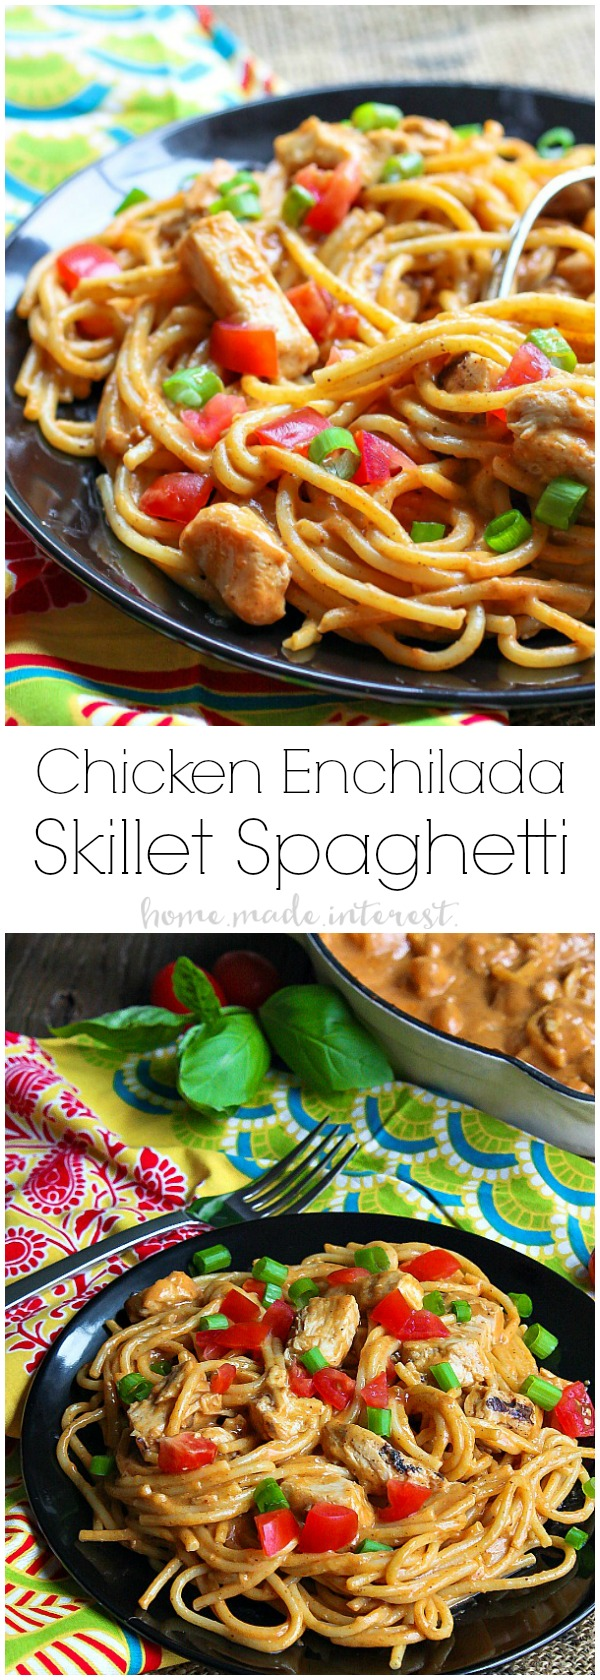 Chicken Enchilada Skillet Spaghetti | If you're looking for an easy skillet meal this Chicken Enchilada Skillet Spaghetti is what you need! It's an easy weeknight dinner recipe that kids and adults will love. Creamy enchilada sauce coating delicious chicken and spaghetti noodles topped with some of your favorite enchilada toppings. It's a chicken enchilada recipe and a spaghetti recipe all in one!